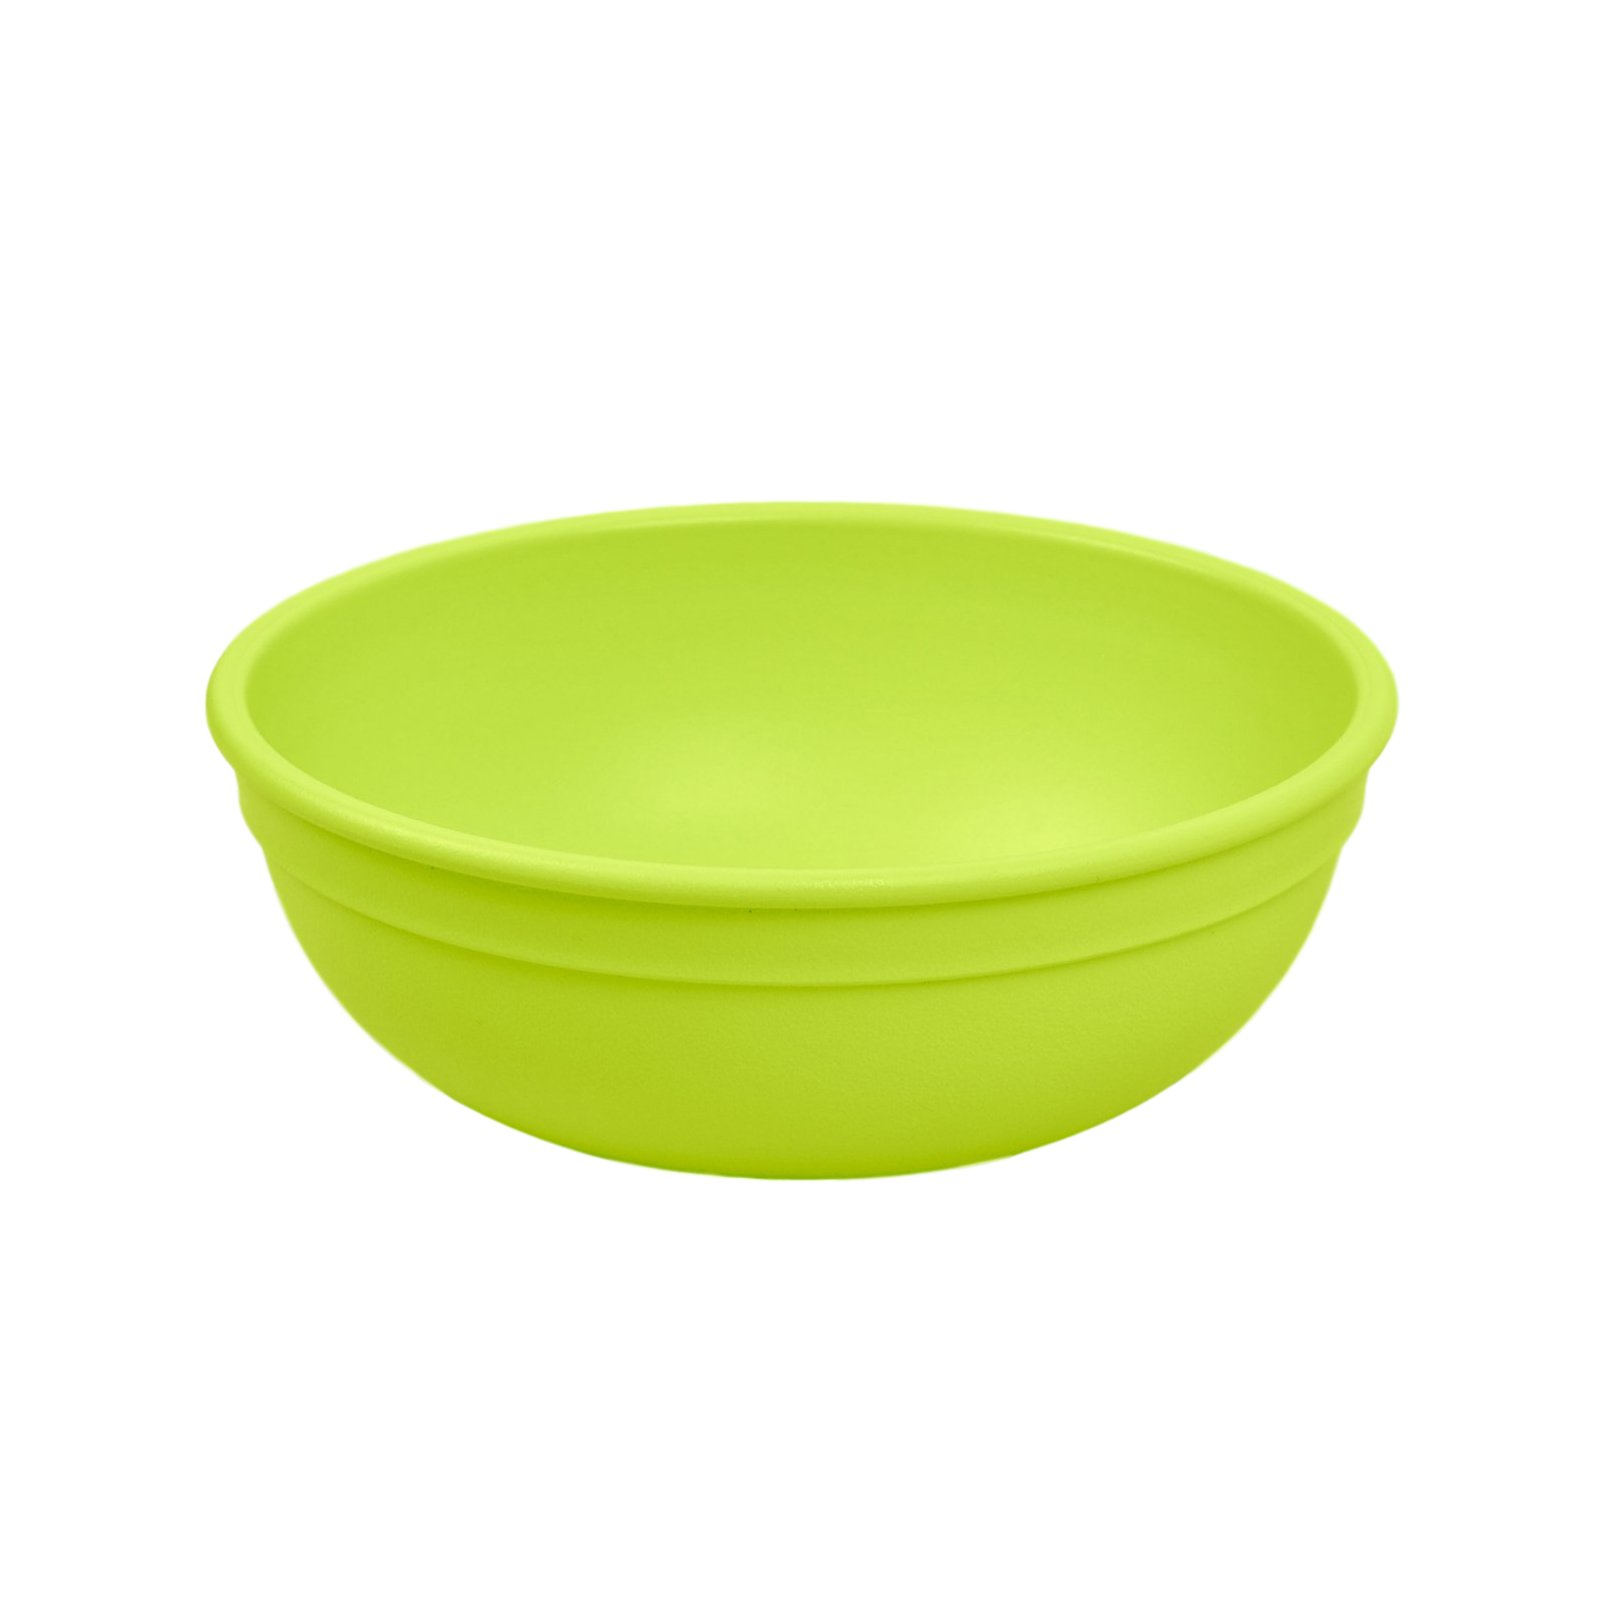 Replay Large Bowl Replay Dinnerware Green at Little Earth Nest Eco Shop